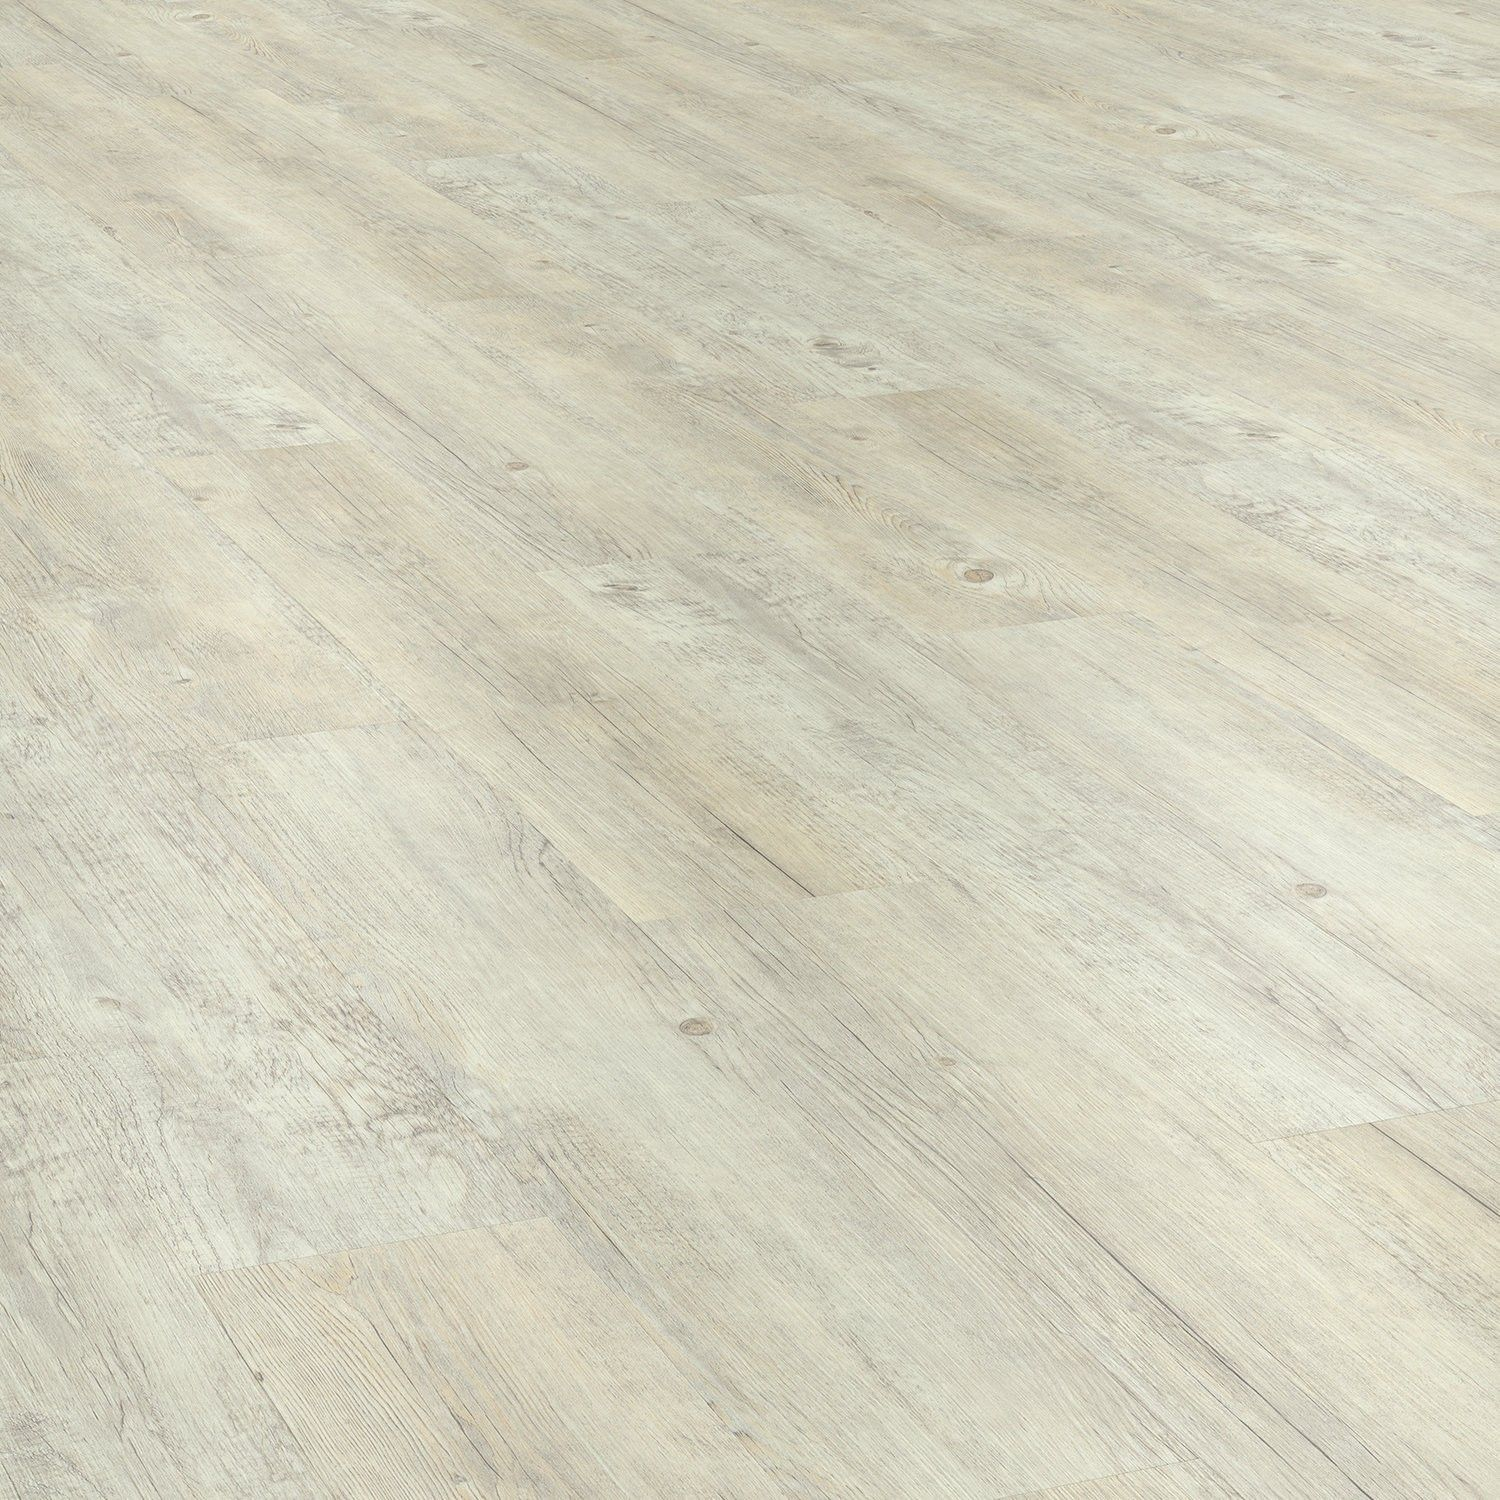 Tegola country single plank 115 whitewash pine luxury vinyl tile tegola country 115 whitewash pine luxury vinyl tile at carpetright dailygadgetfo Gallery